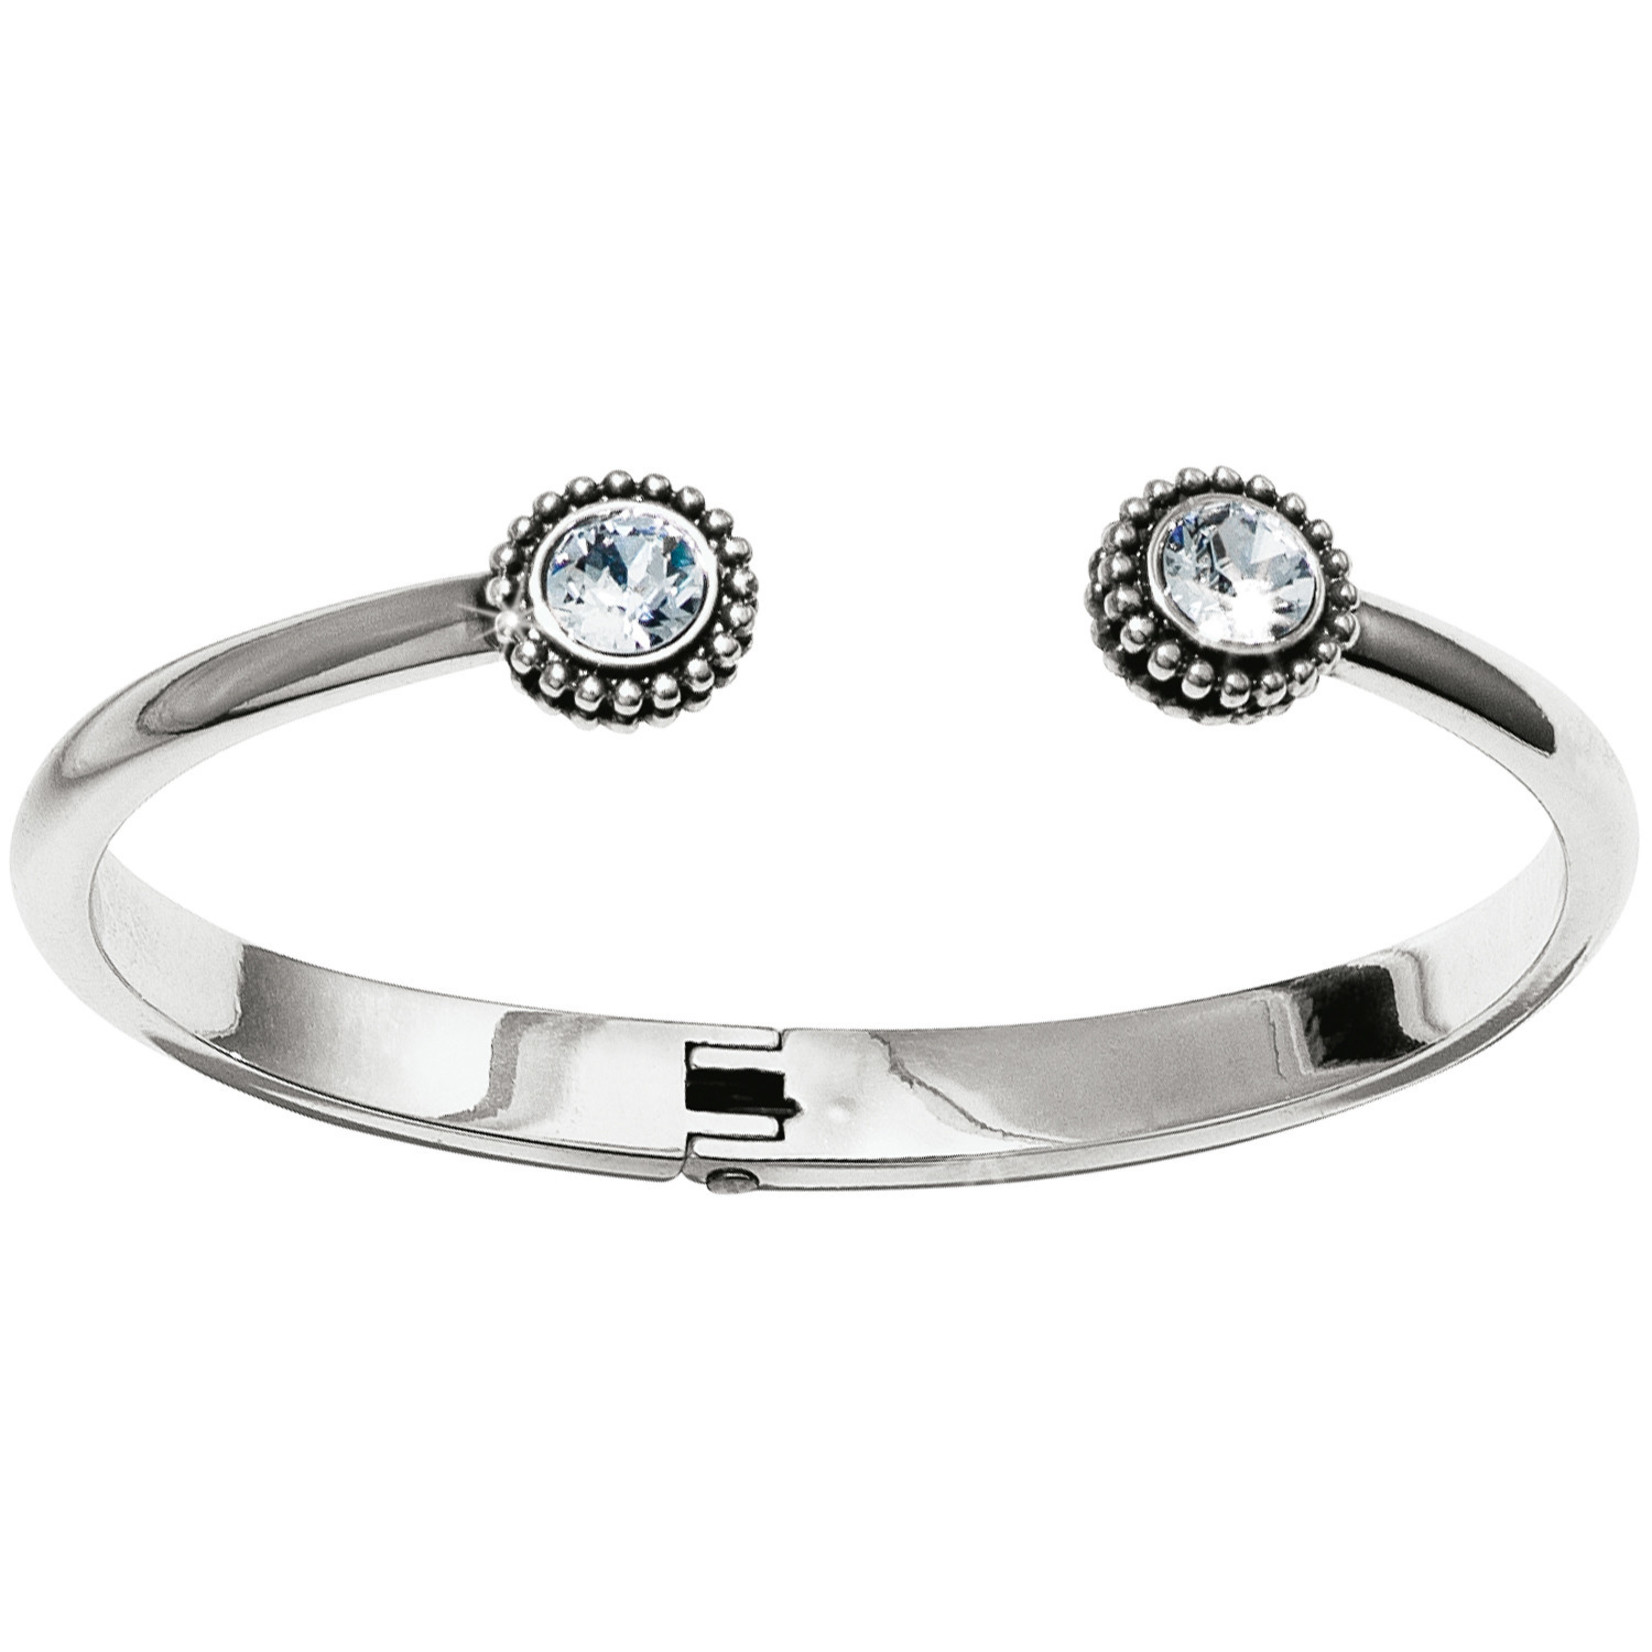 Brighton Twinkle Open Hinged Bangle